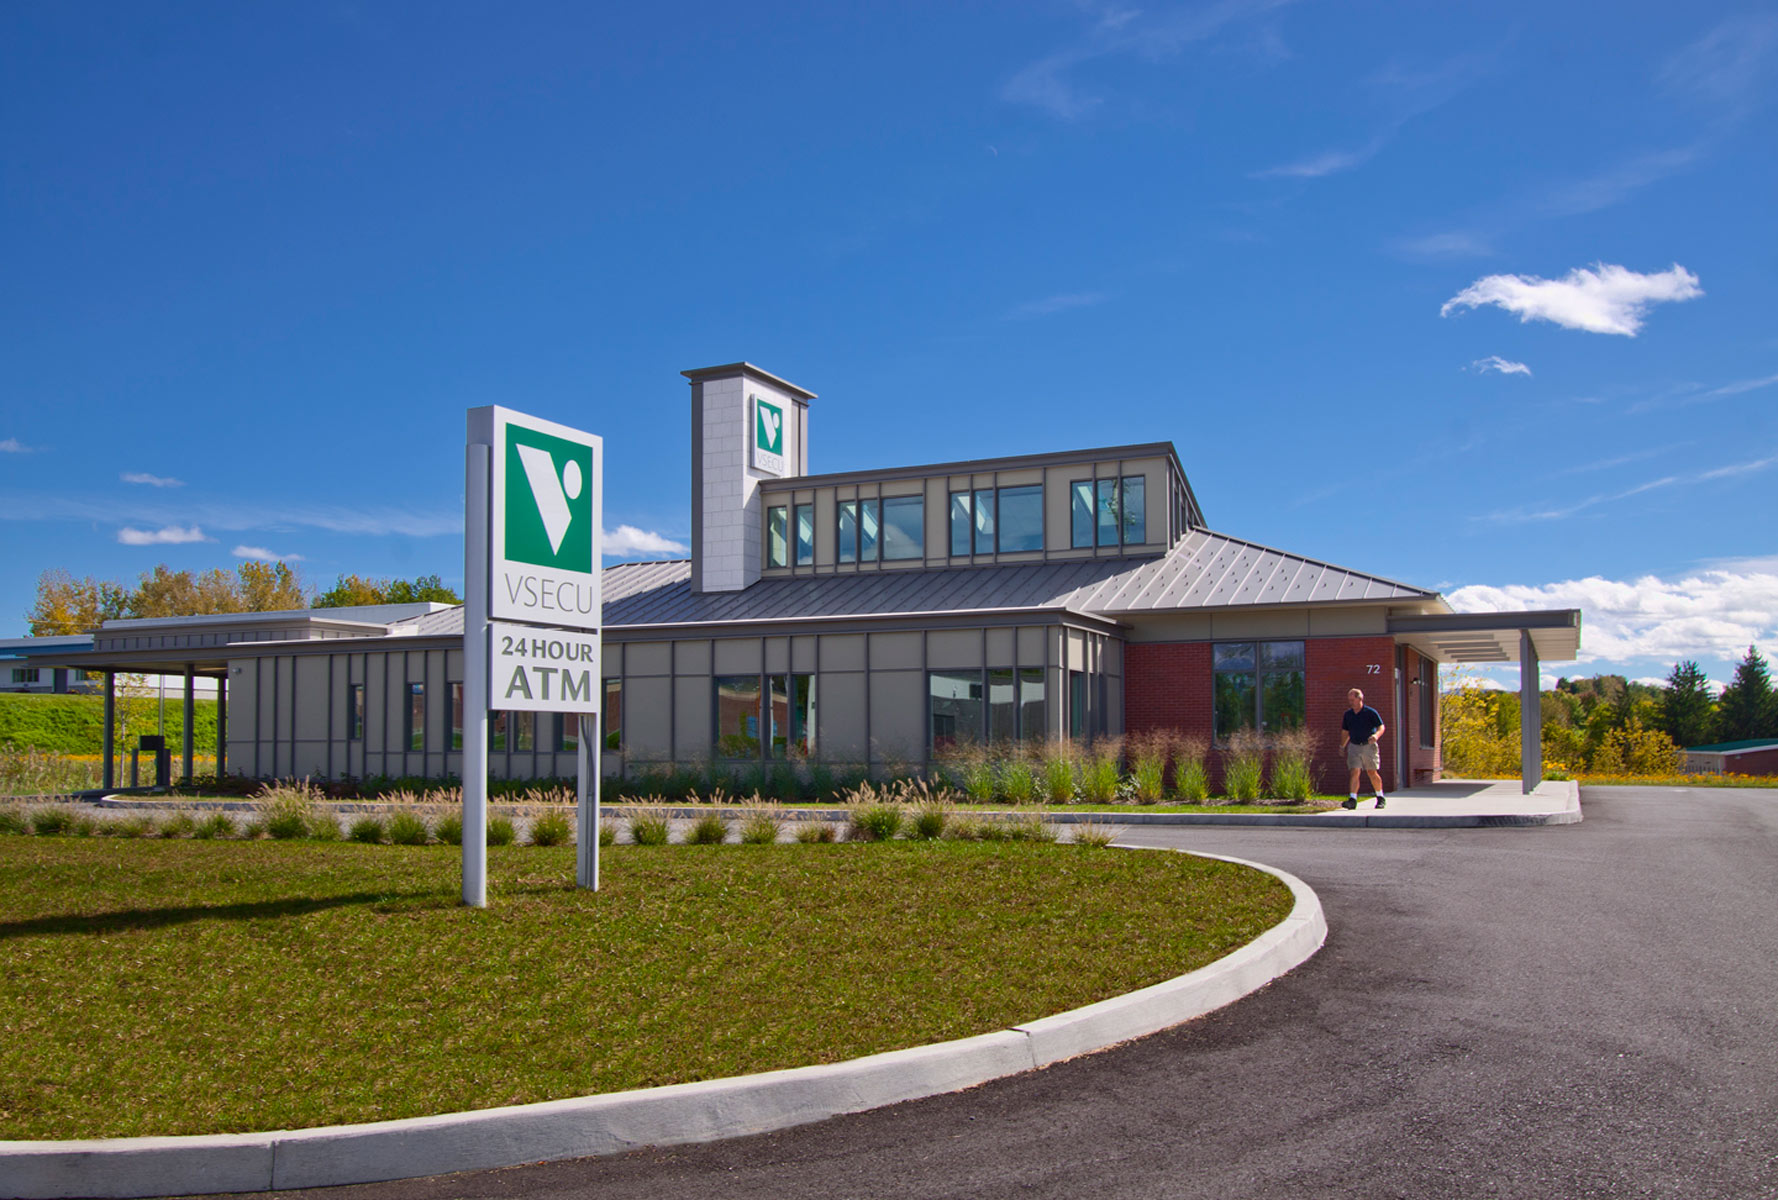 LEED Certified VSECU by Russell Construction Services